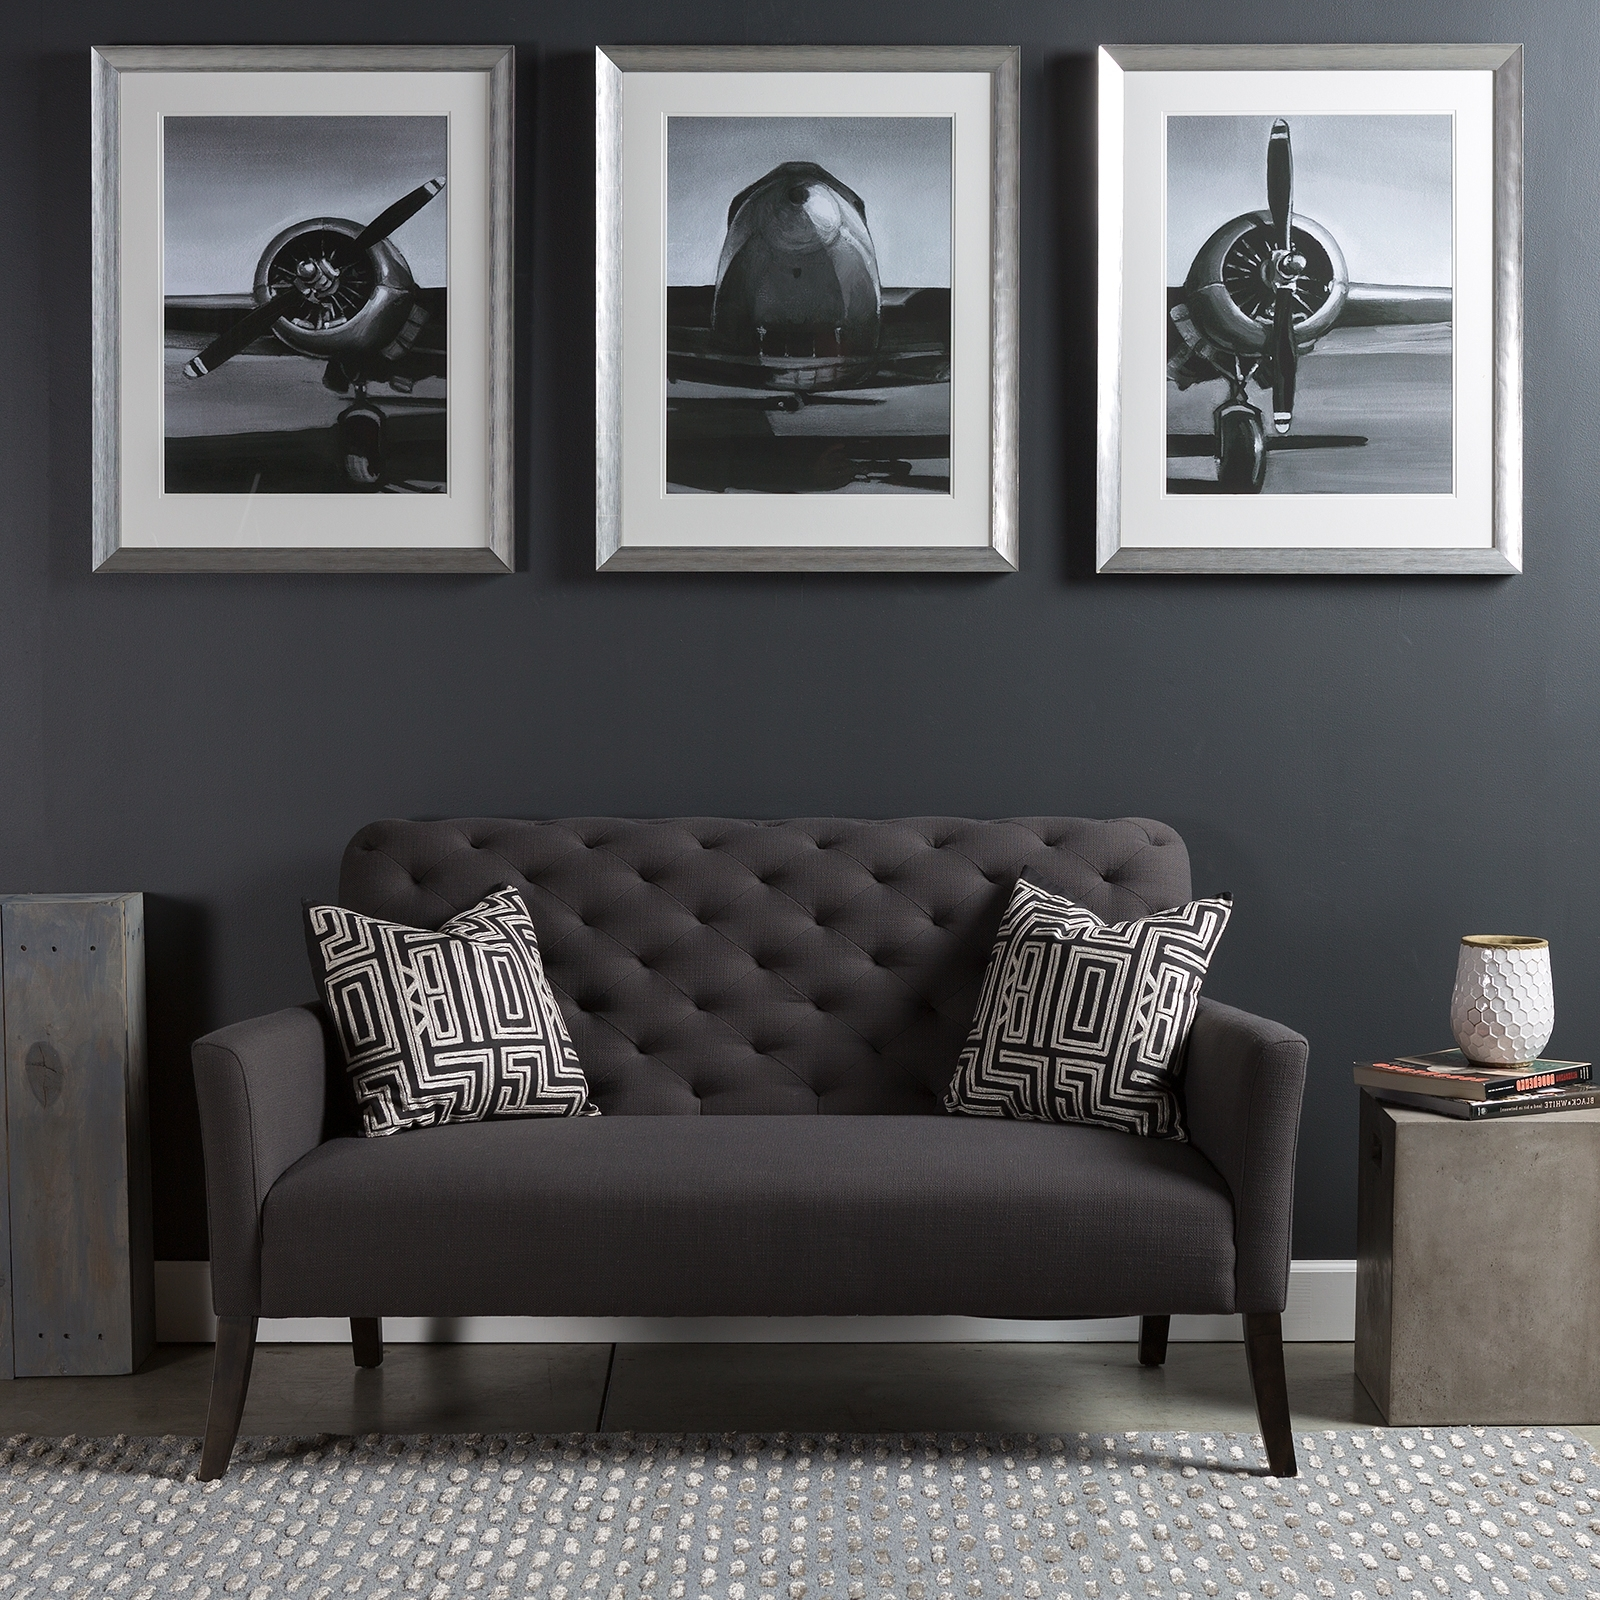 Triptych Wall Art Piece With A Modern Industrial Flare; A Series Pertaining To Favorite Port Elizabeth Canvas Wall Art (View 14 of 15)